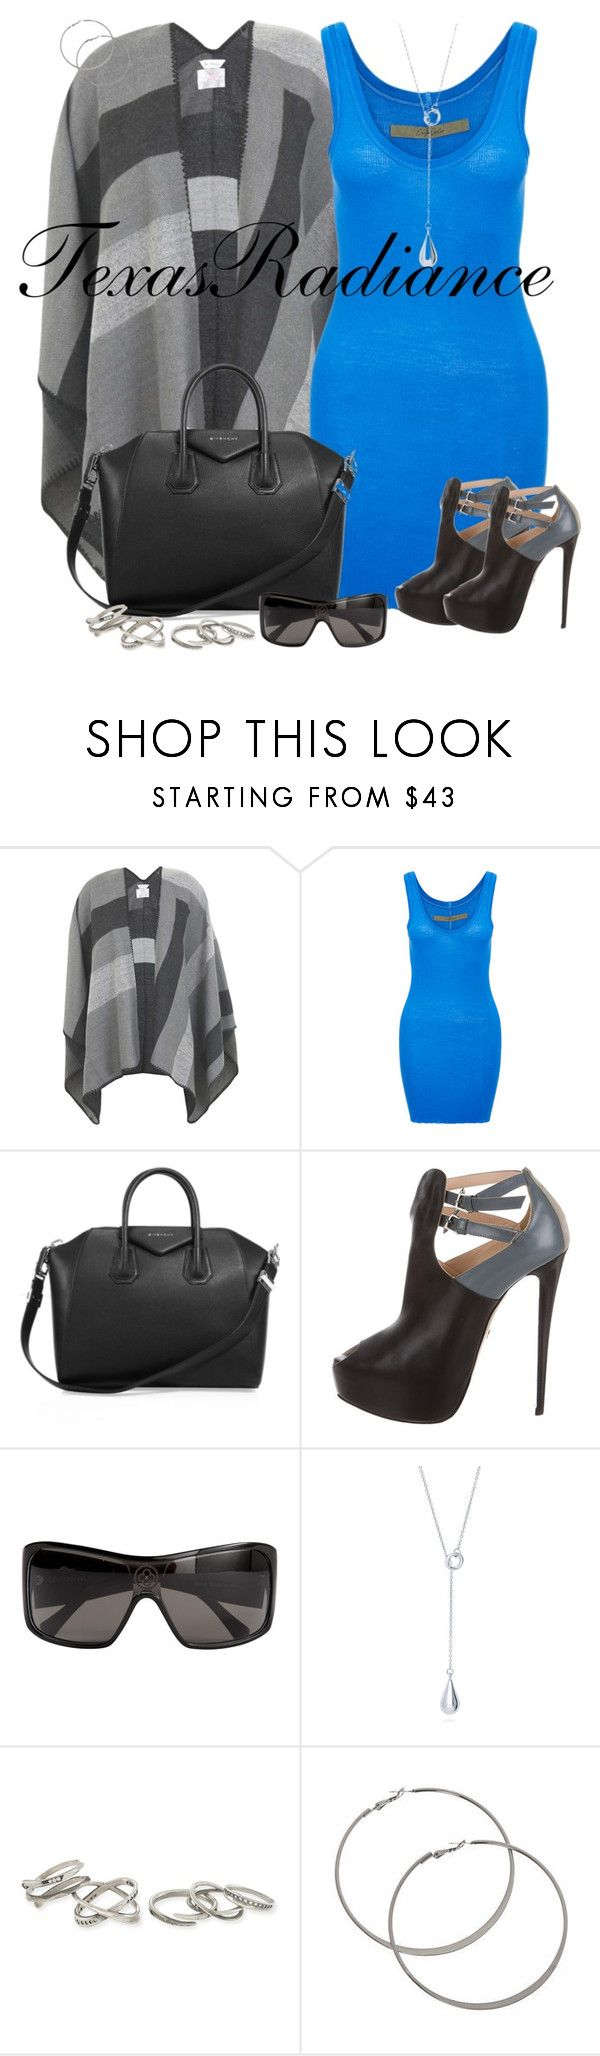 """Daft Punk- The Game of Love"" by texasradiance ❤ liked on Polyvore featuring Miss Selfridge, Enza Costa, Givenchy, Ruthie Davis, Louis Vuitton, BERRICLE, Kendra Scott and claire's"